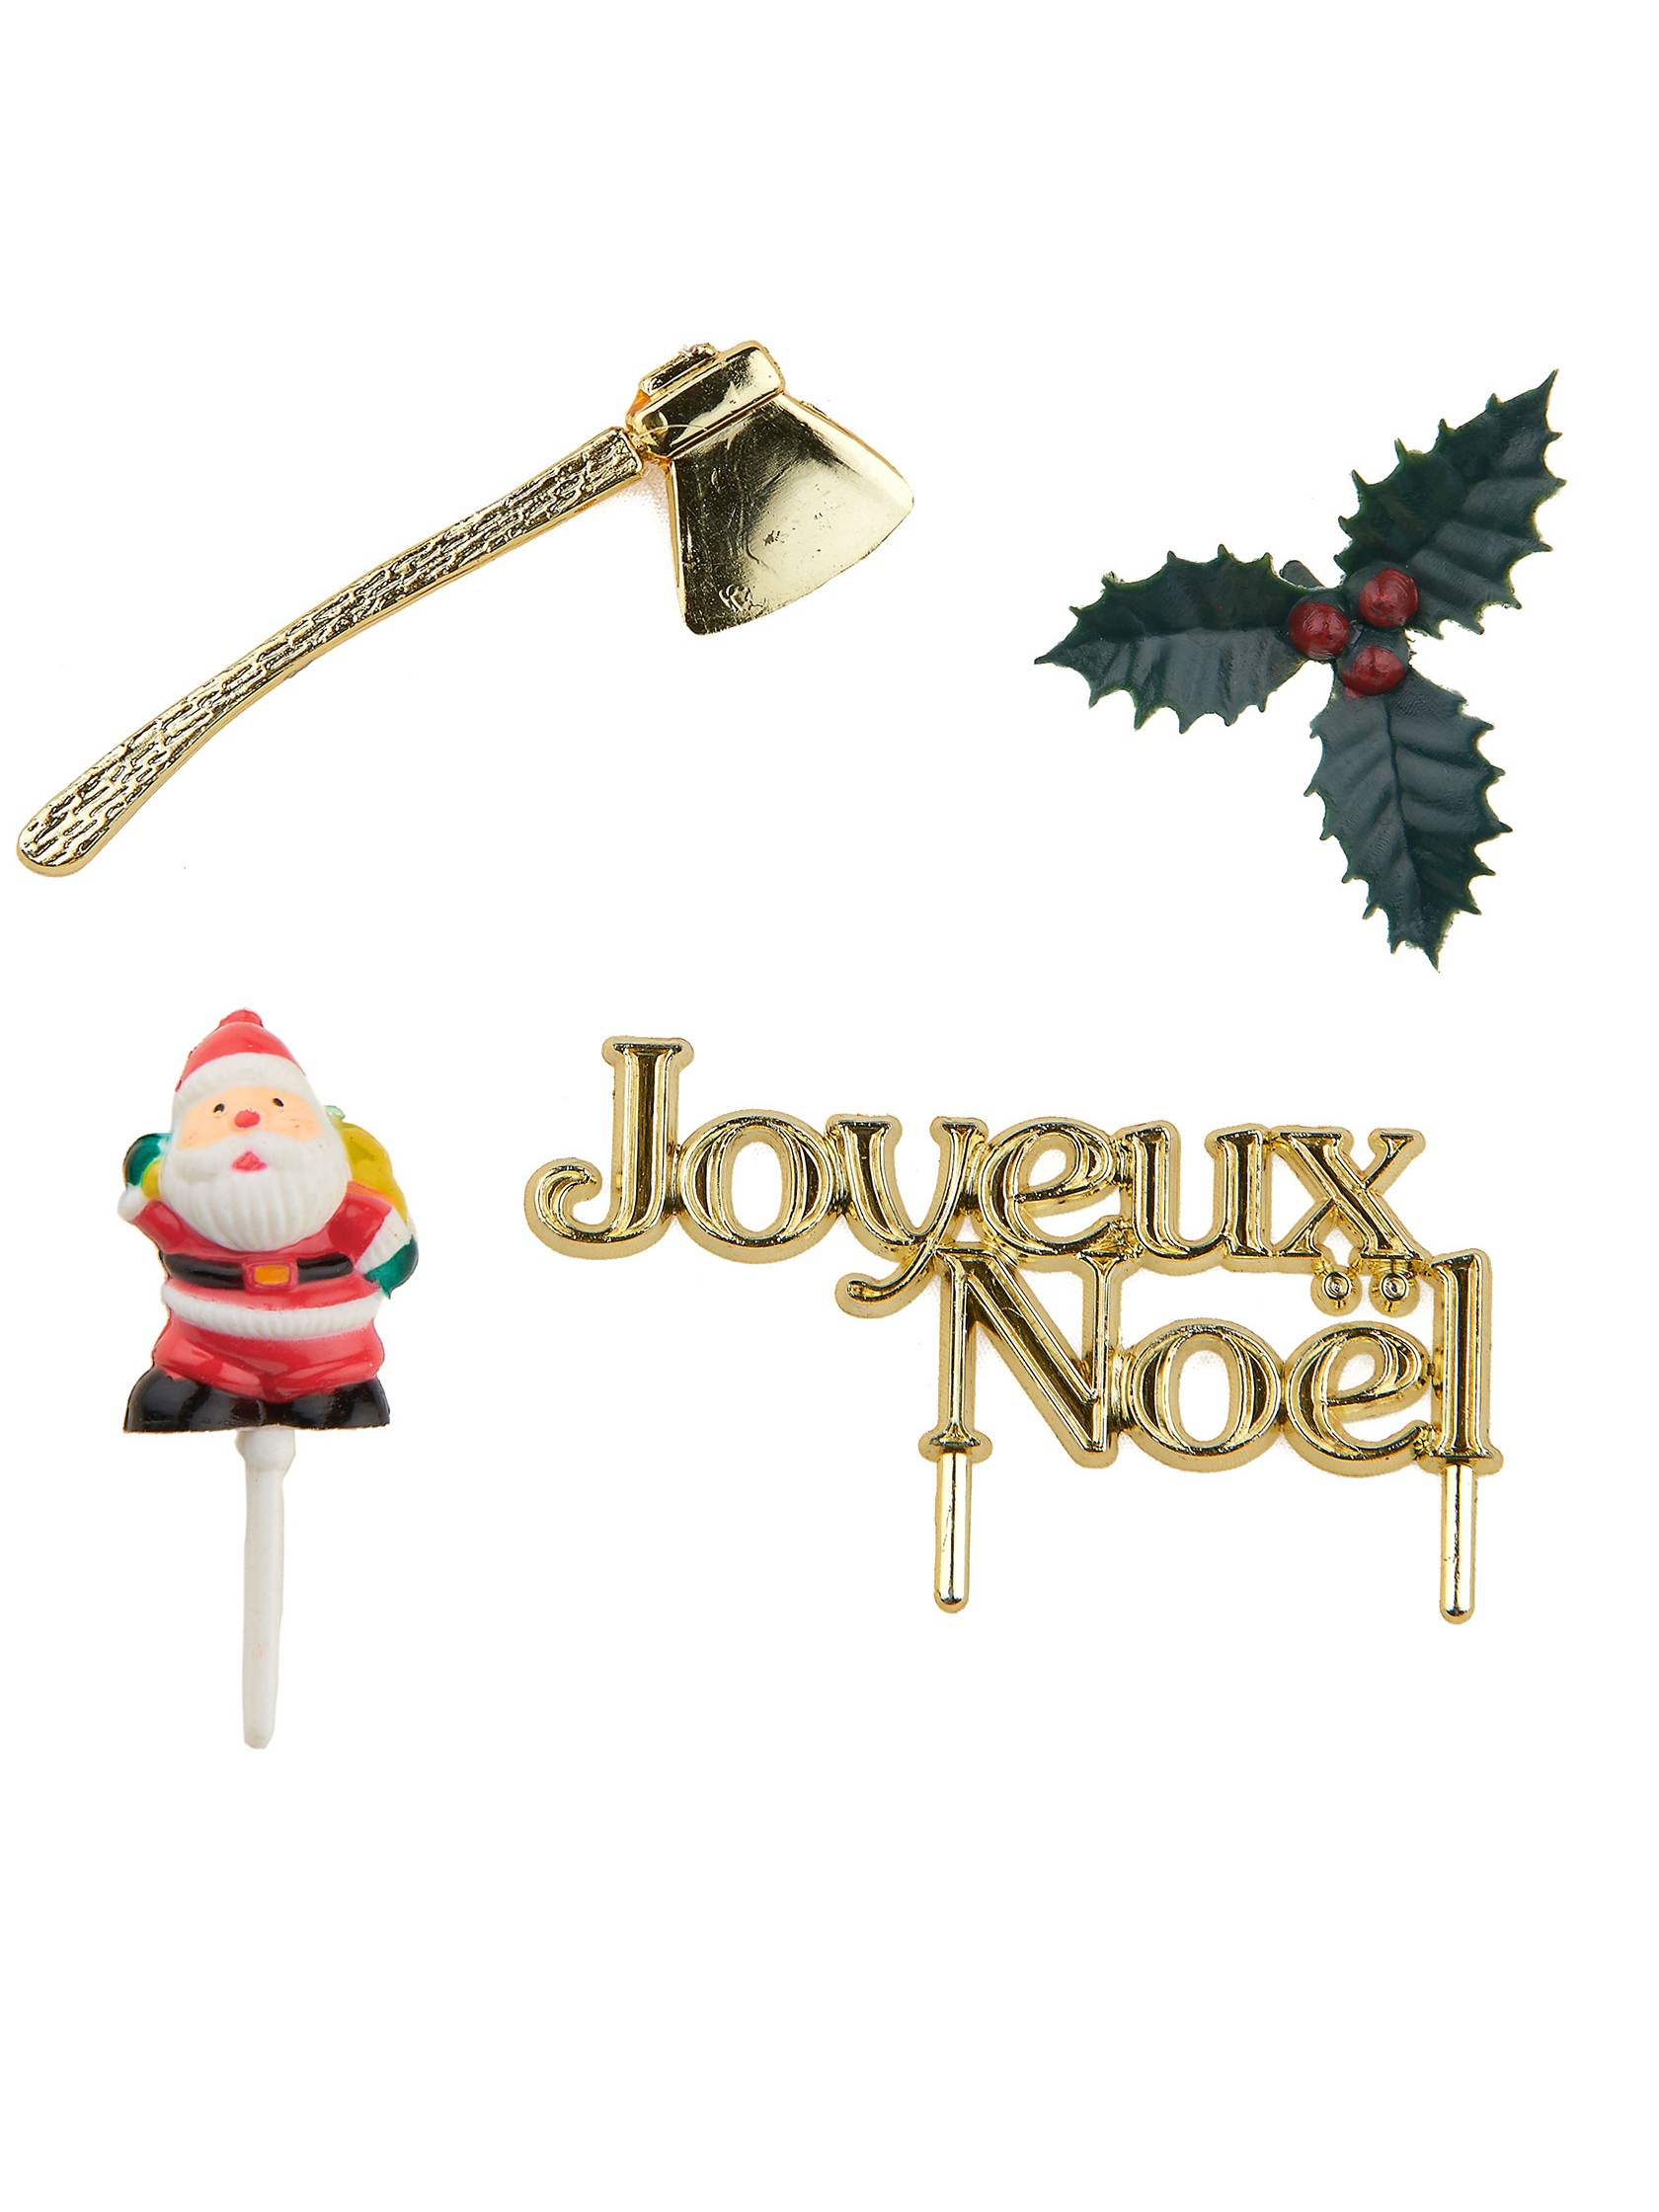 D corations b che de no l d coration anniversaire et for Decoration buche de noel